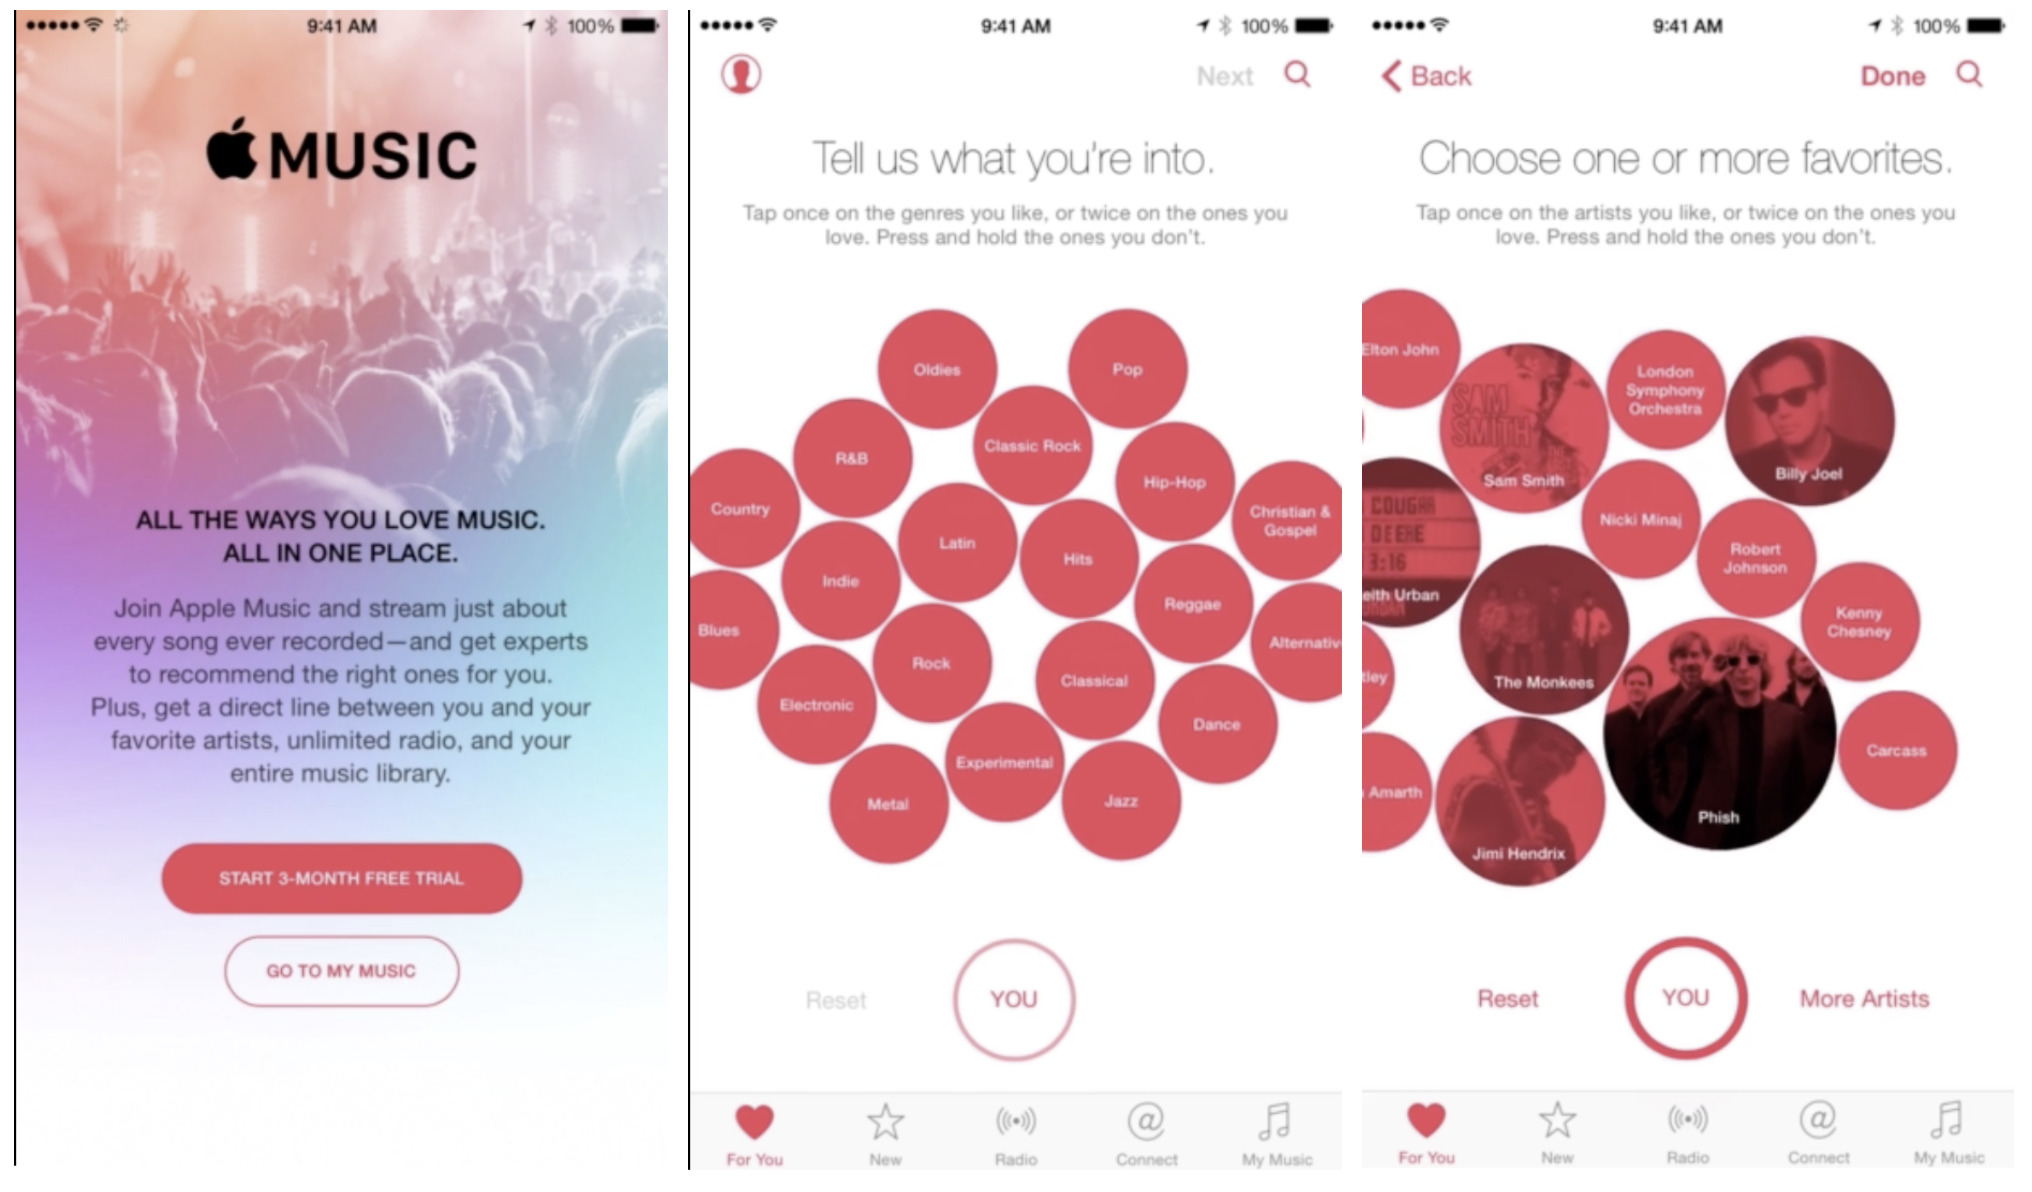 Apple has built an onboarding experience for it's music streaming platform that gathers a lot of information from the user even before the first song is played.